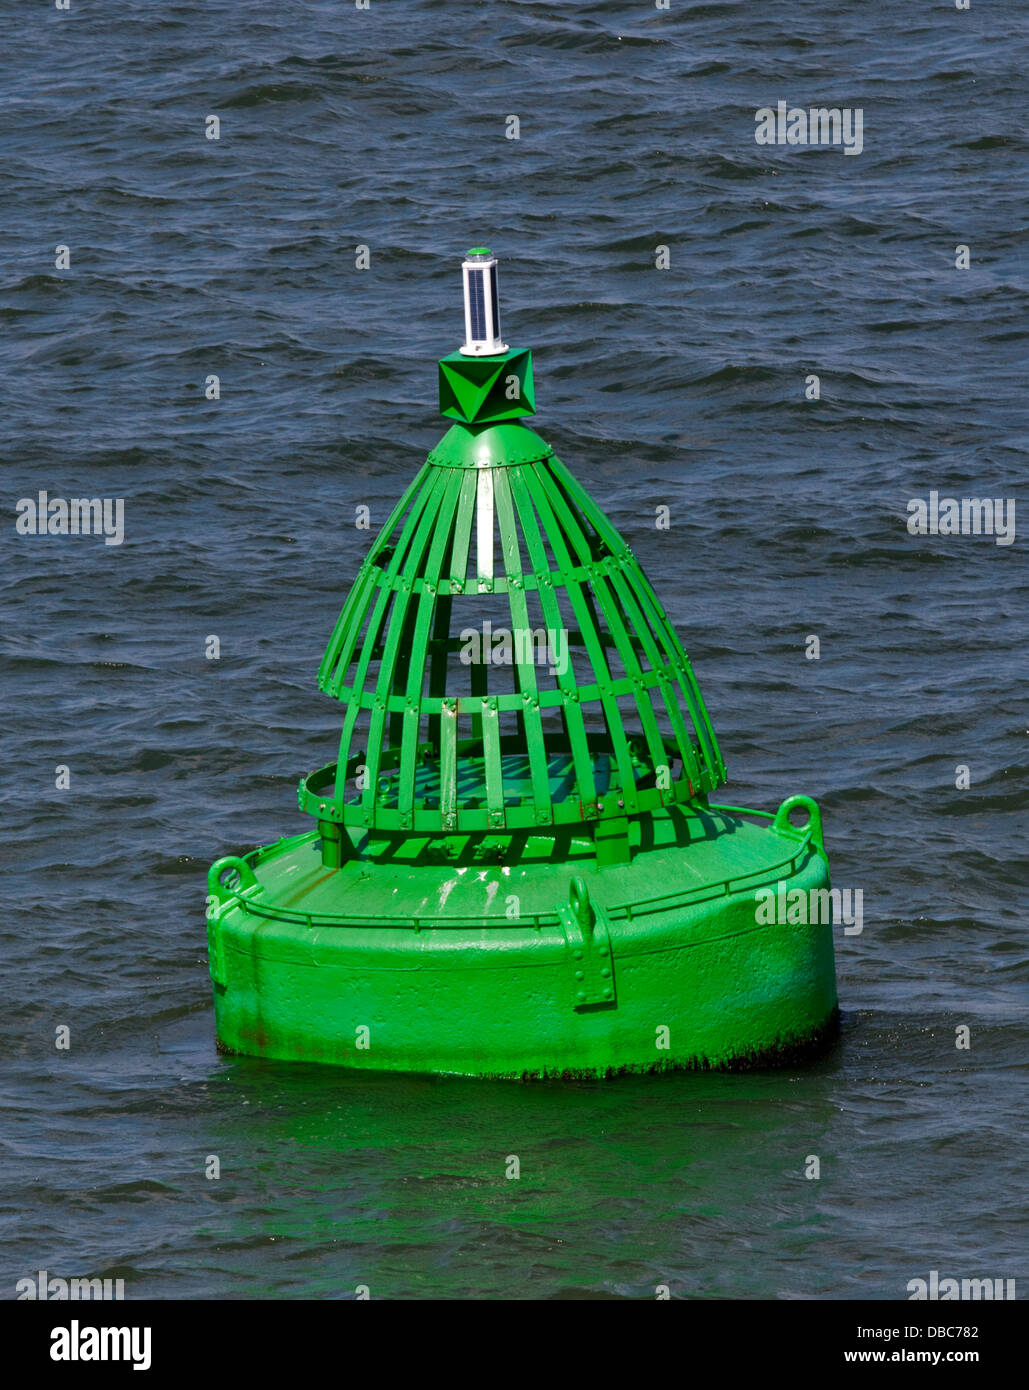 Green Buoy, Southampton Water, Hampshire, England - Stock Image